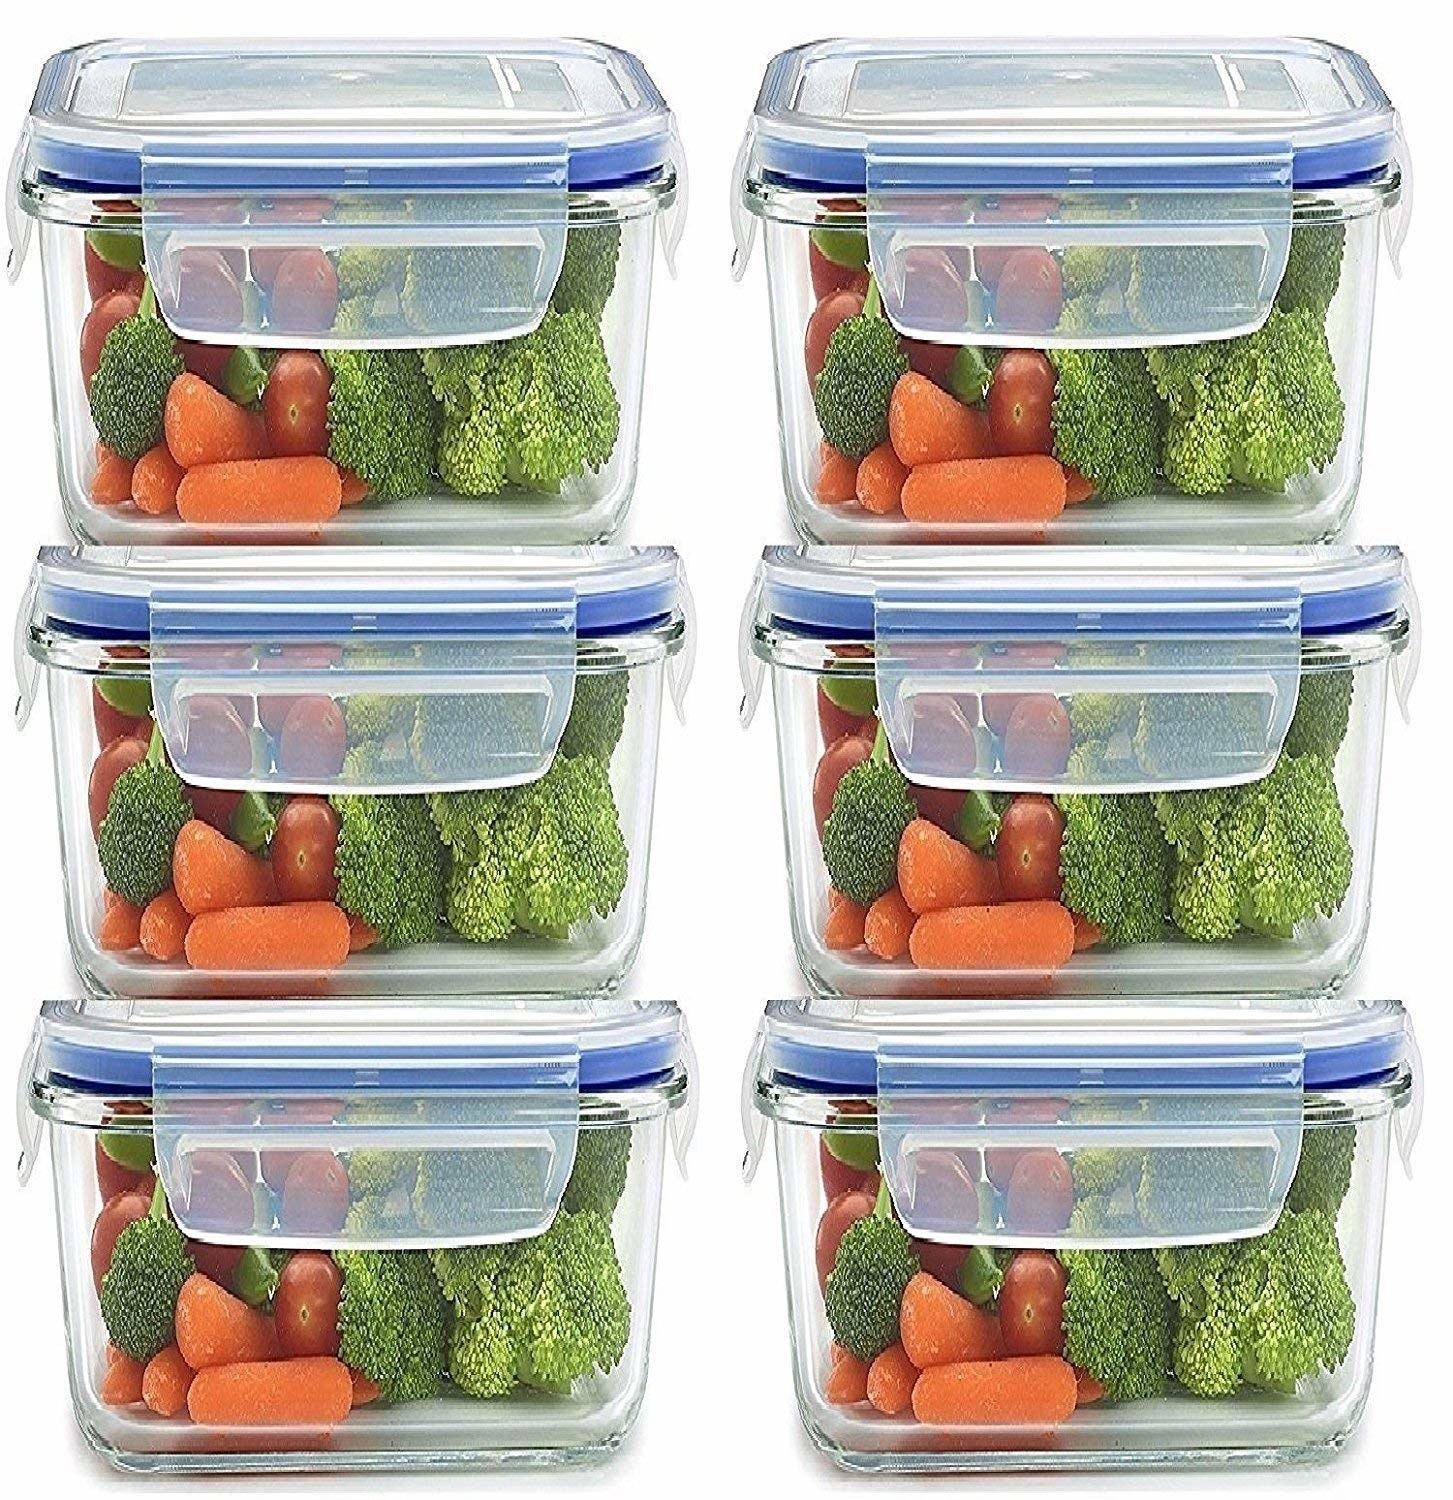 Six airtight food containers with different vegetables in them